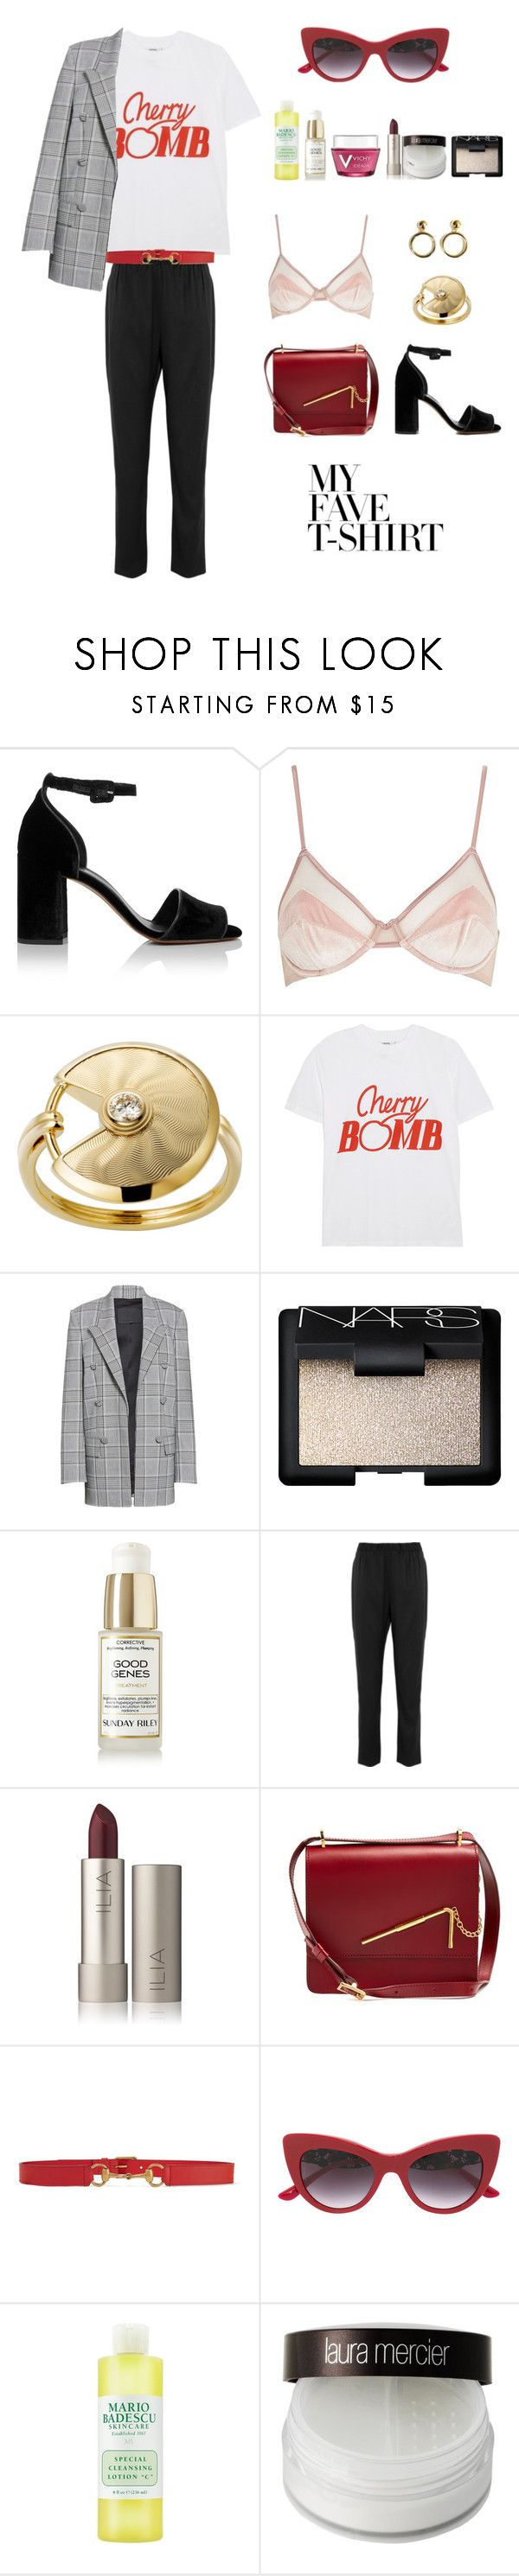 """Sans titre #114"" by slowlymydarling ❤ liked on Polyvore featuring Whistles, Ganni, Alexander Wang, NARS Cosmetics, Sunday Riley, Amy Winehouse, T By Alexander Wang, Sophie Hulme, Gucci and Dolce&Gabbana"